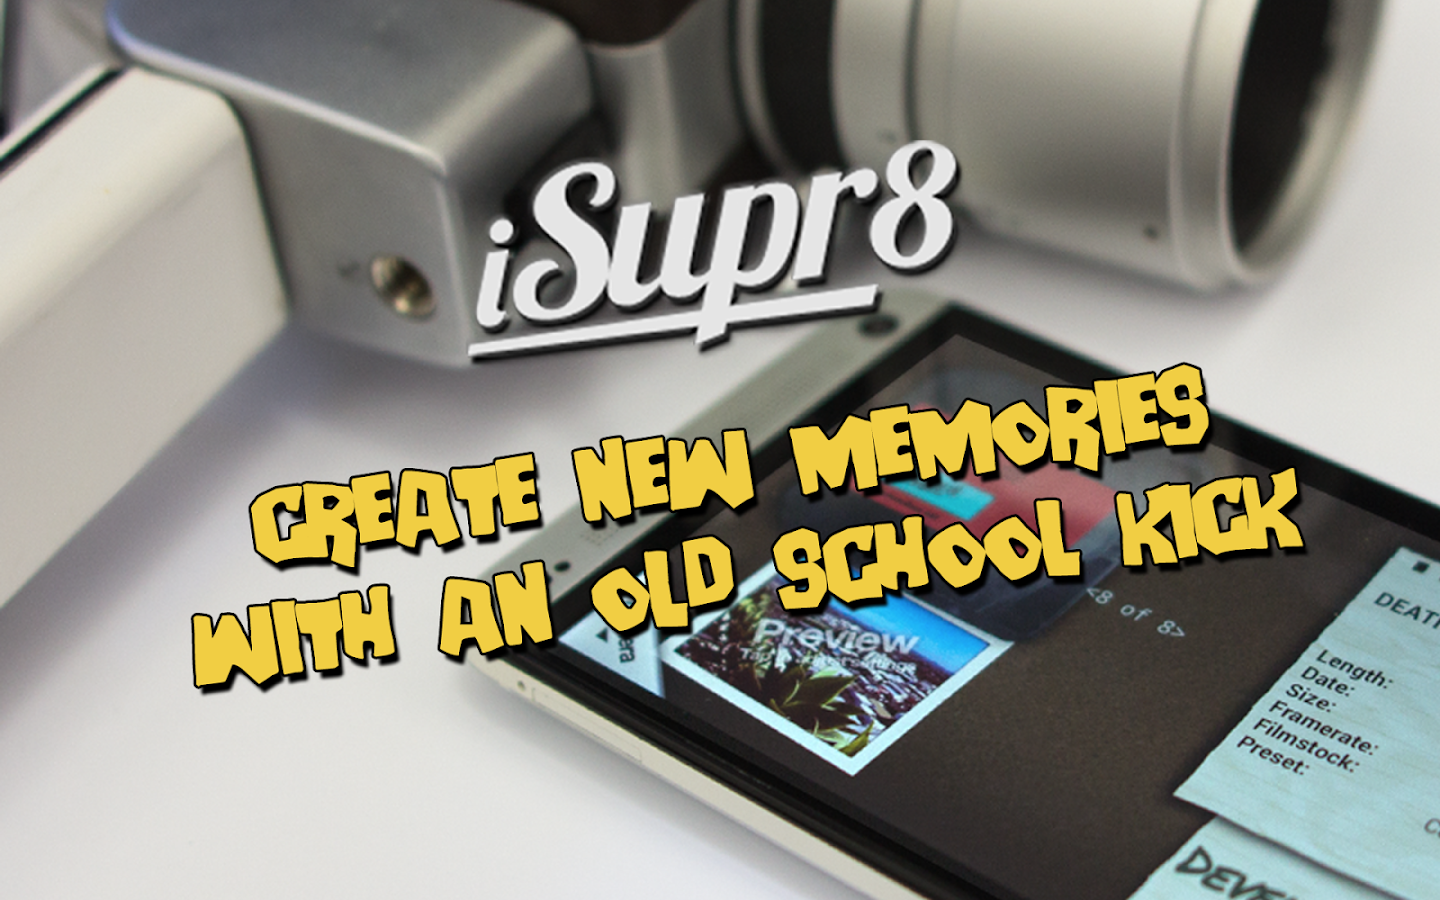 iSupr8 Vintage Super 8 Camera- screenshot